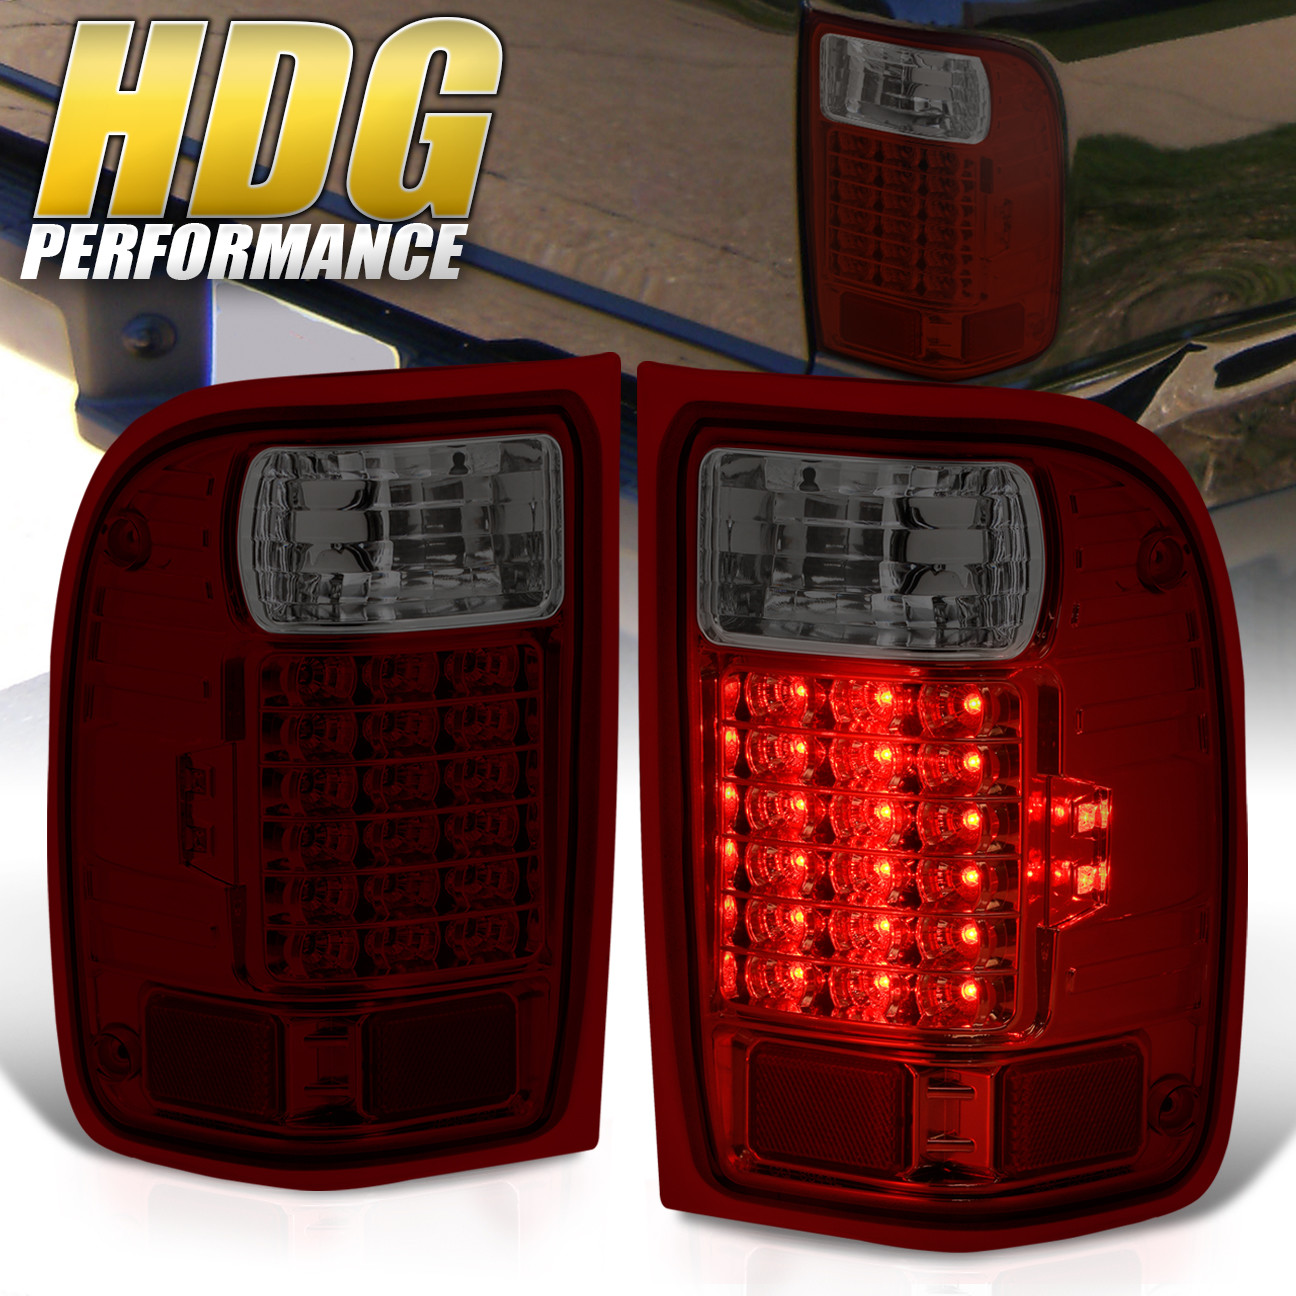 2011 Ford Ranger For Sale >> 2001-2011 Ford Ranger Replacement Red Smoke Lens LED Tail Lights Pair Lamps | eBay